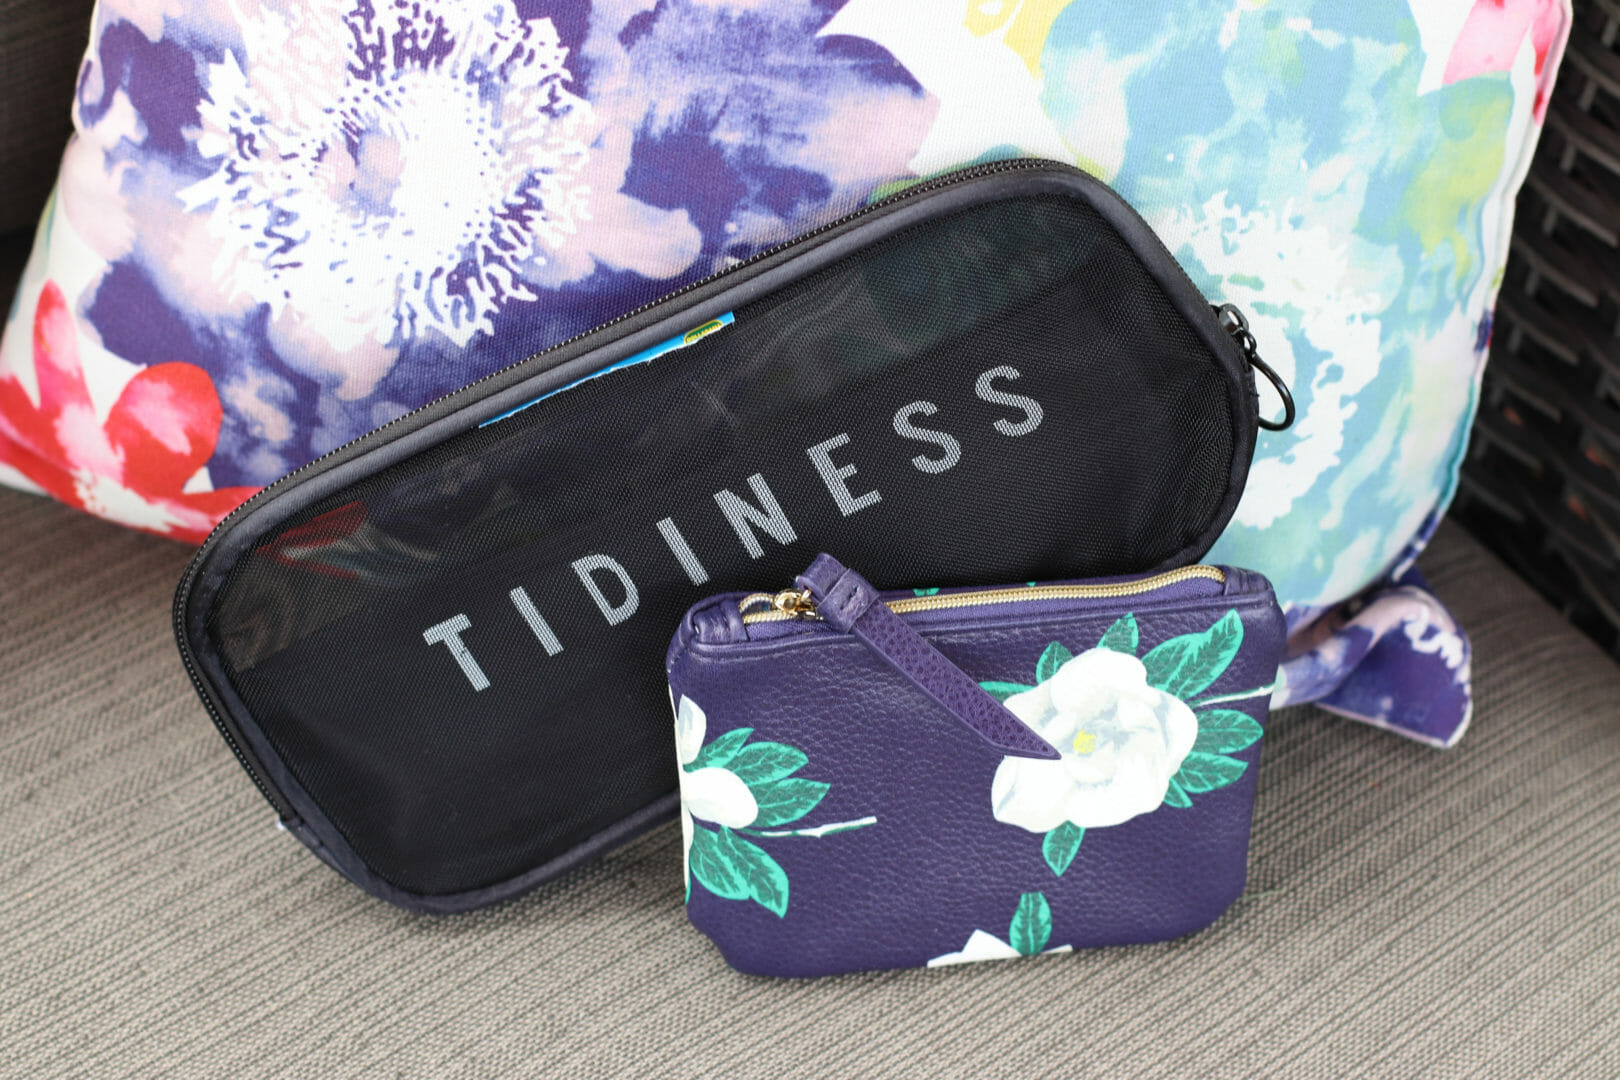 tidiness pouch